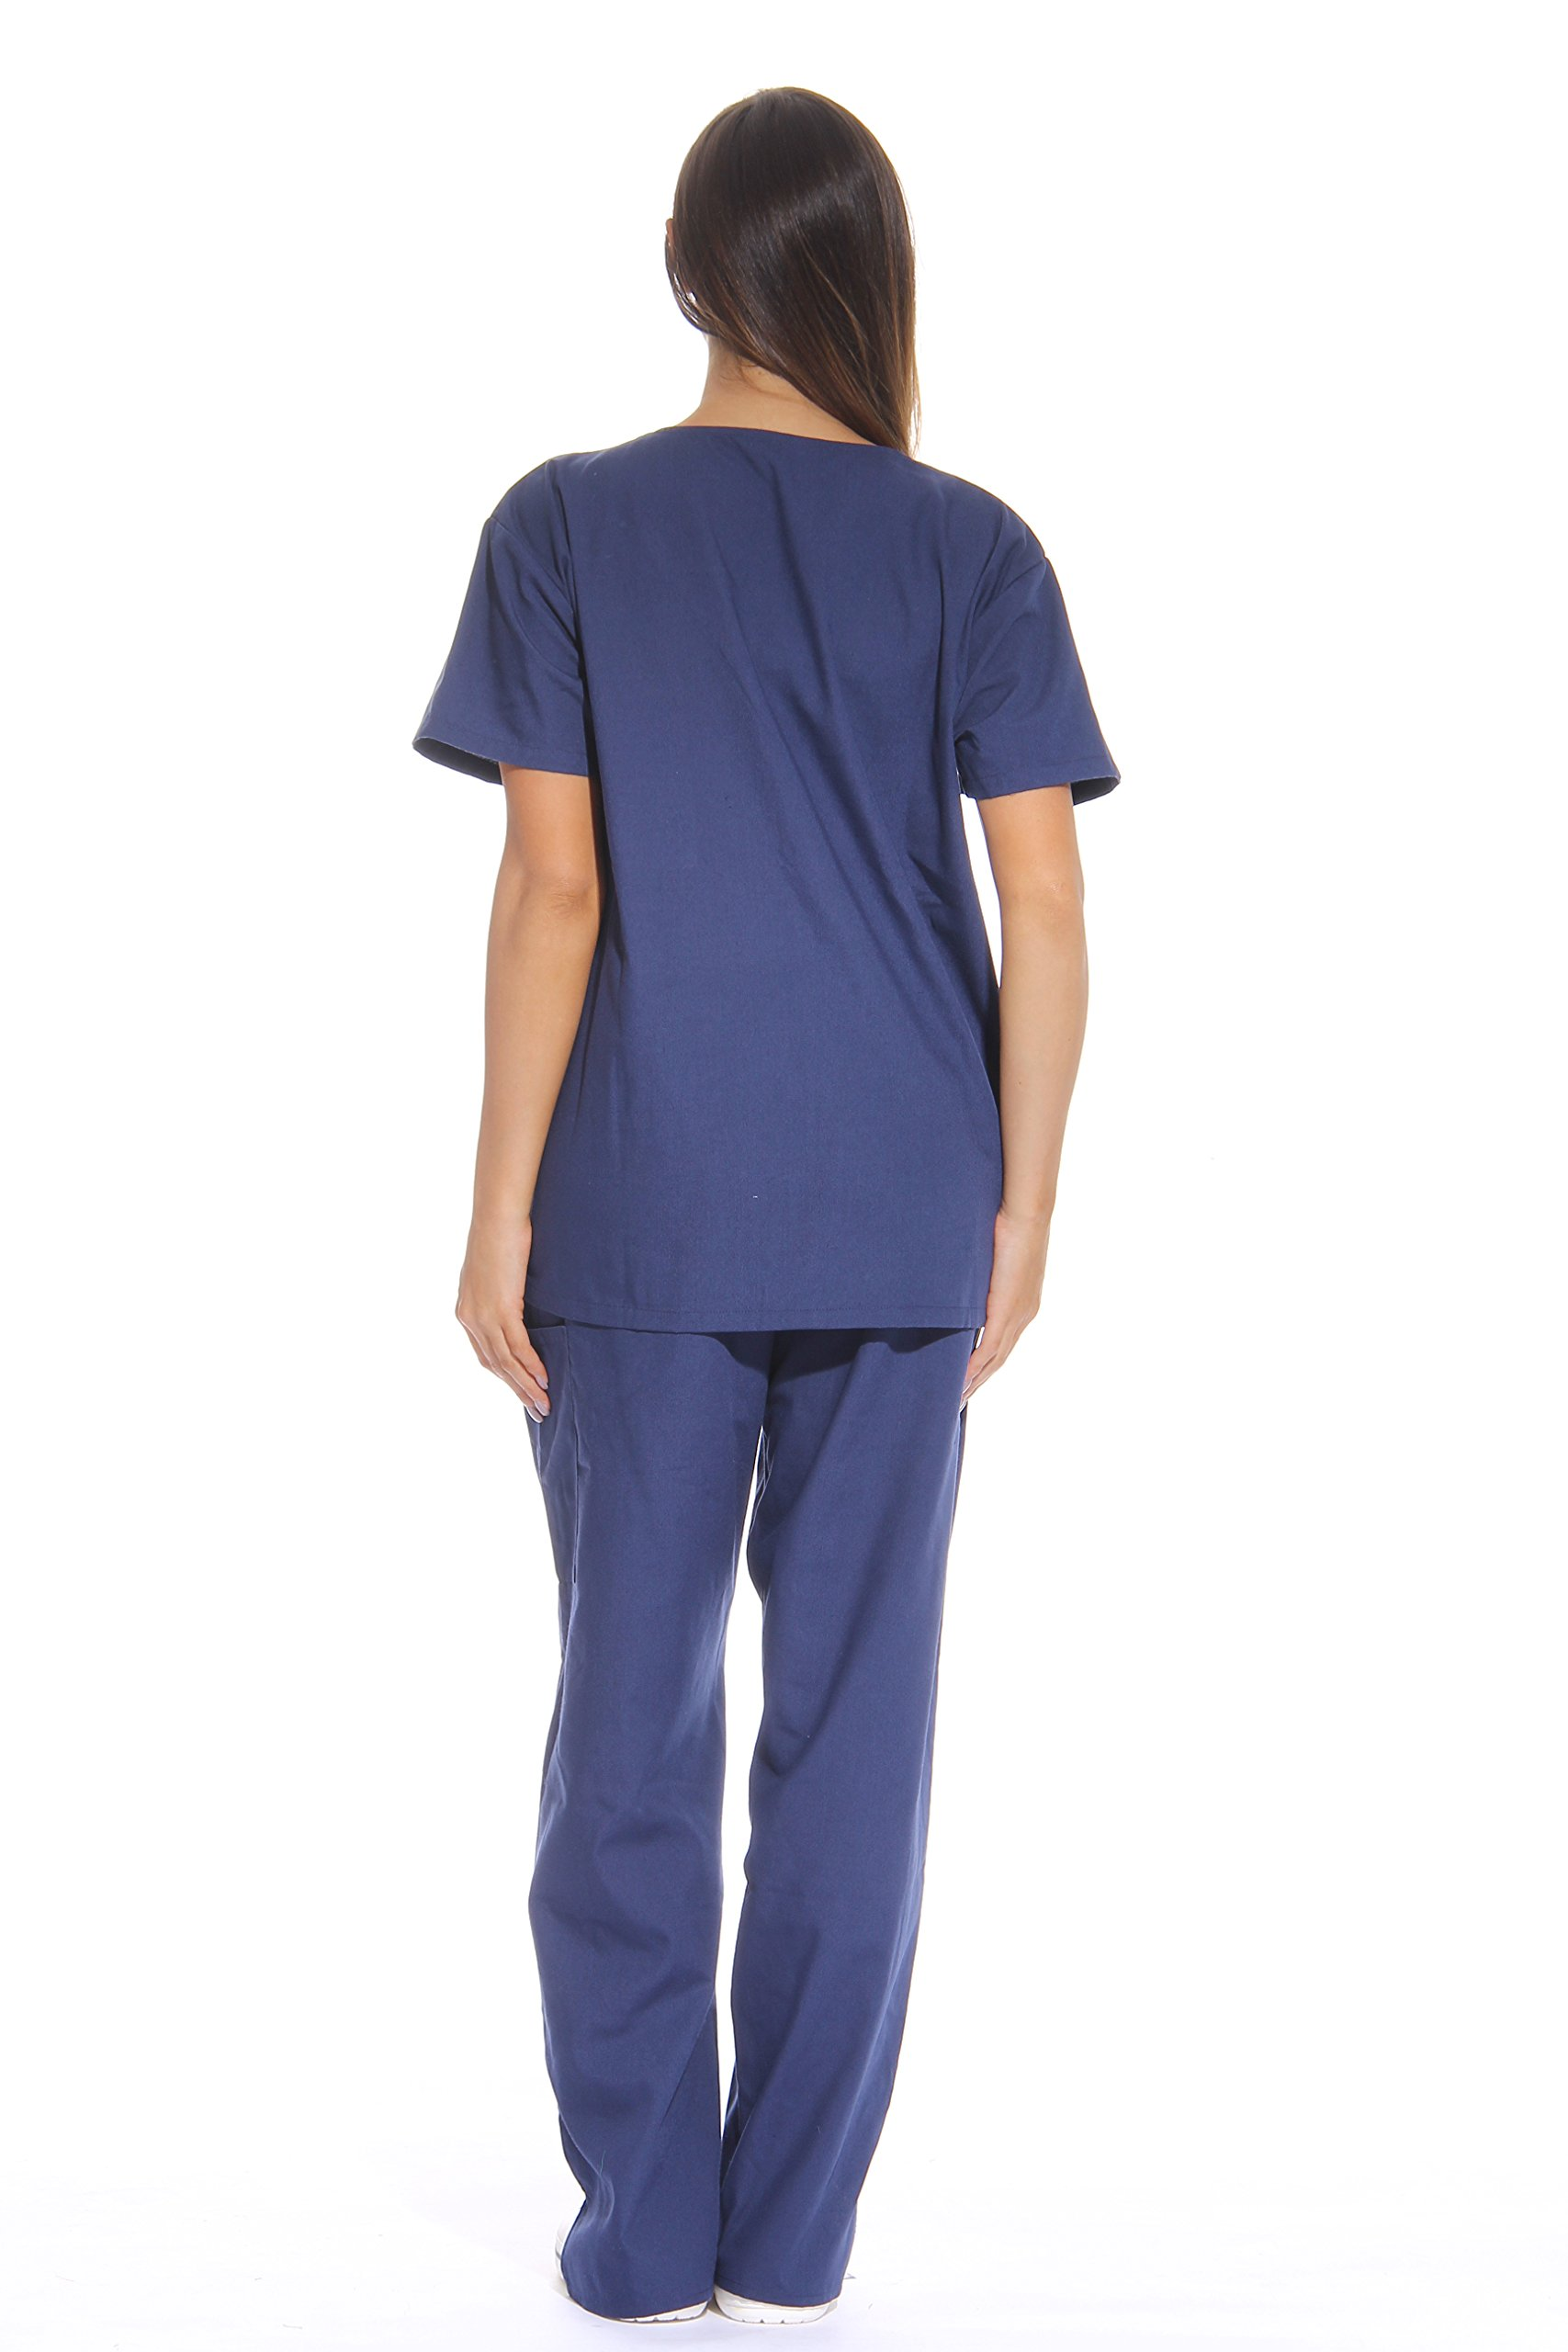 Just Love Women's Scrub Sets Six Pocket Medical Scrubs (V-Neck With Cargo Pant), Navy, X-Small by Just Love (Image #3)